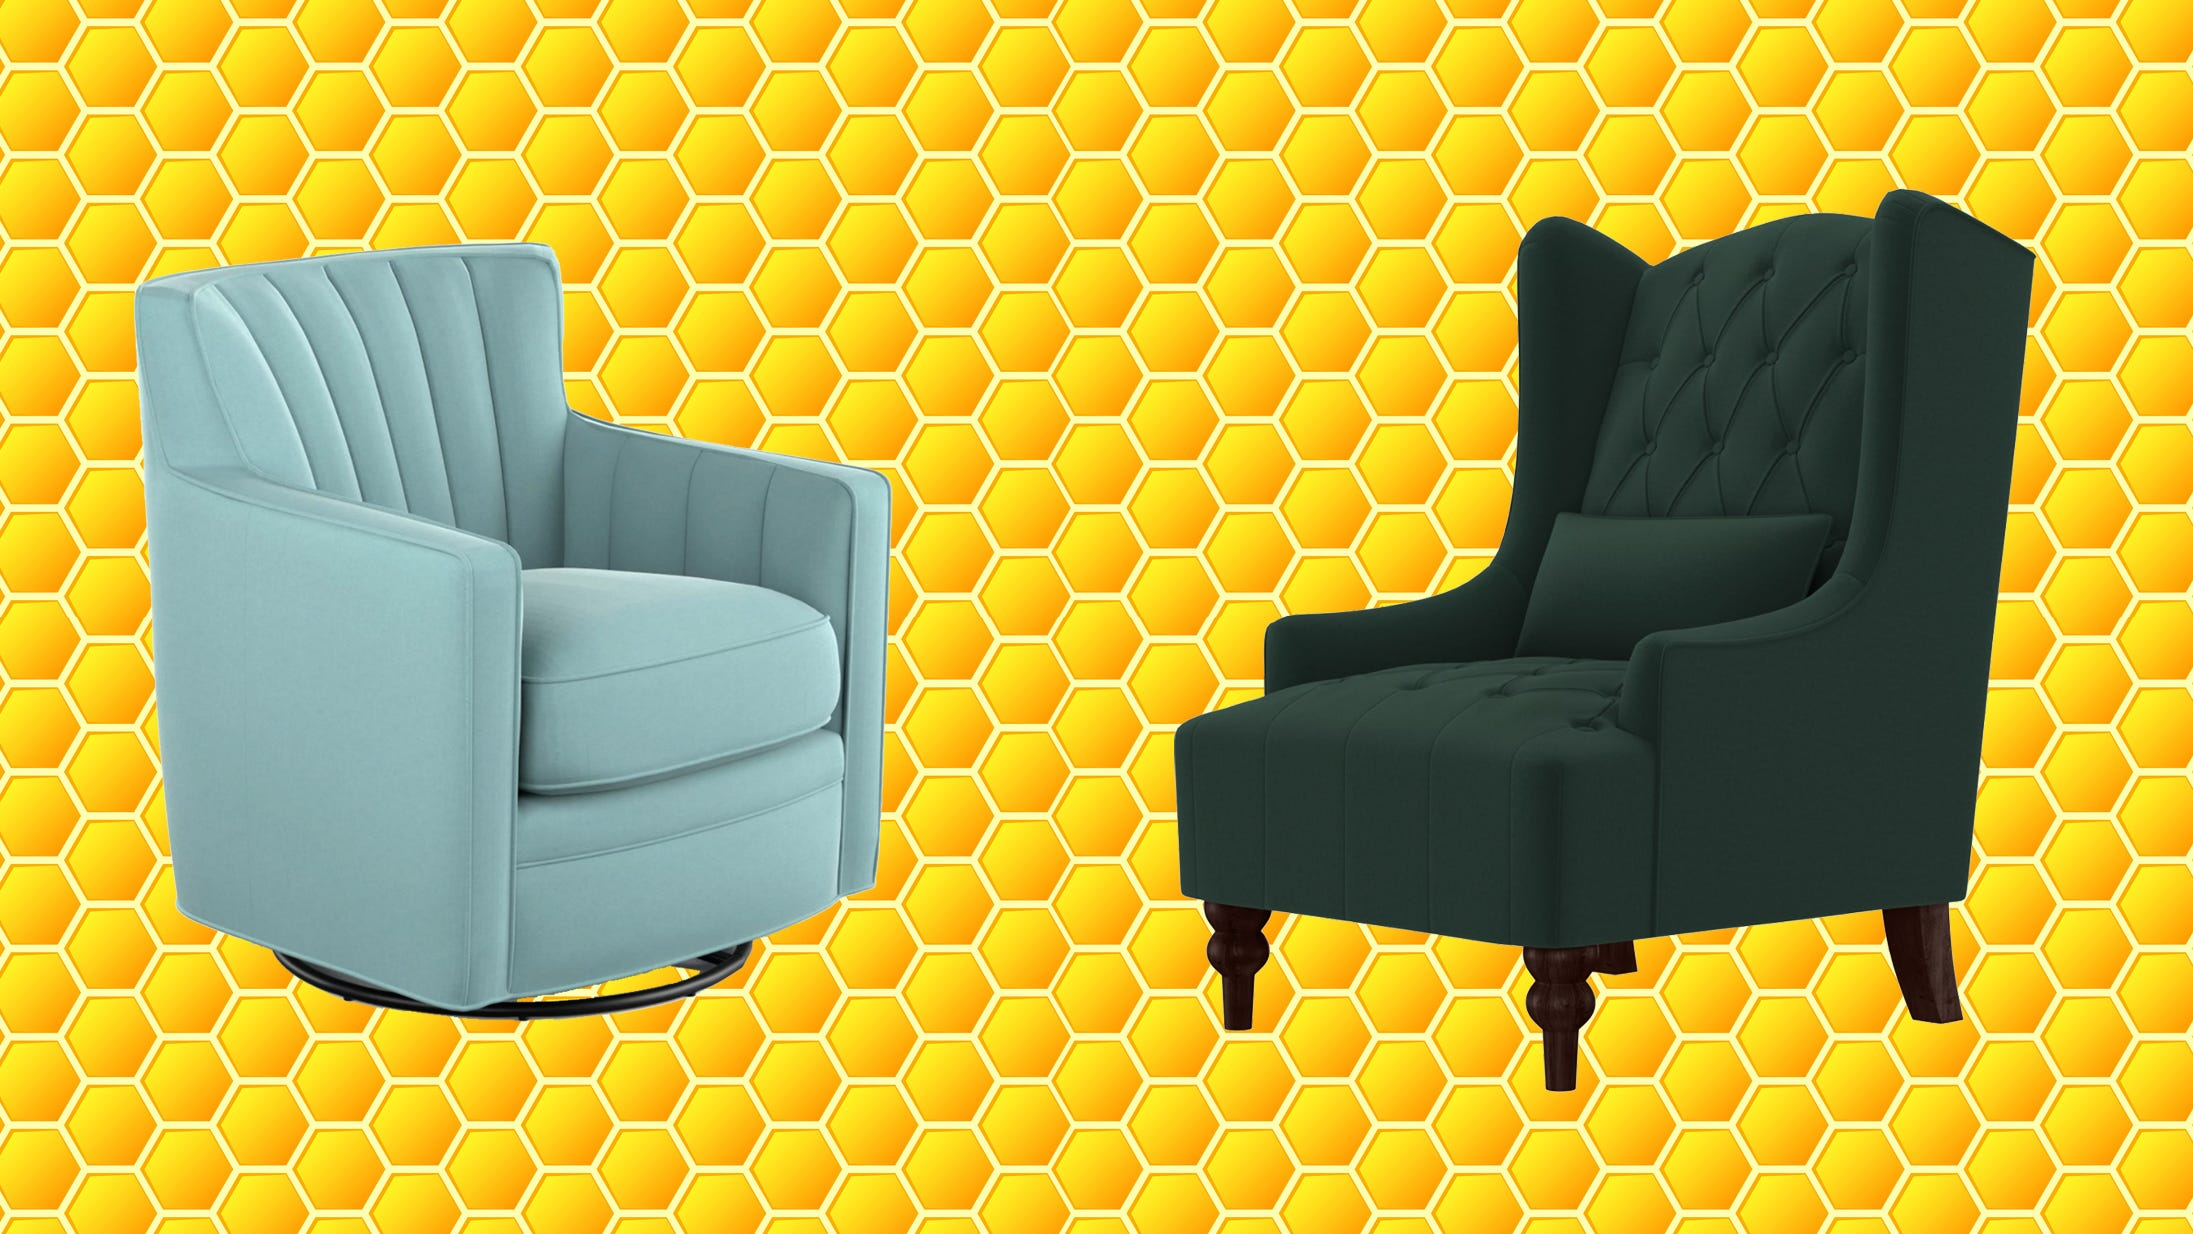 Tons of top-rated accent chairs are on sale from $80 right now at Wayfair